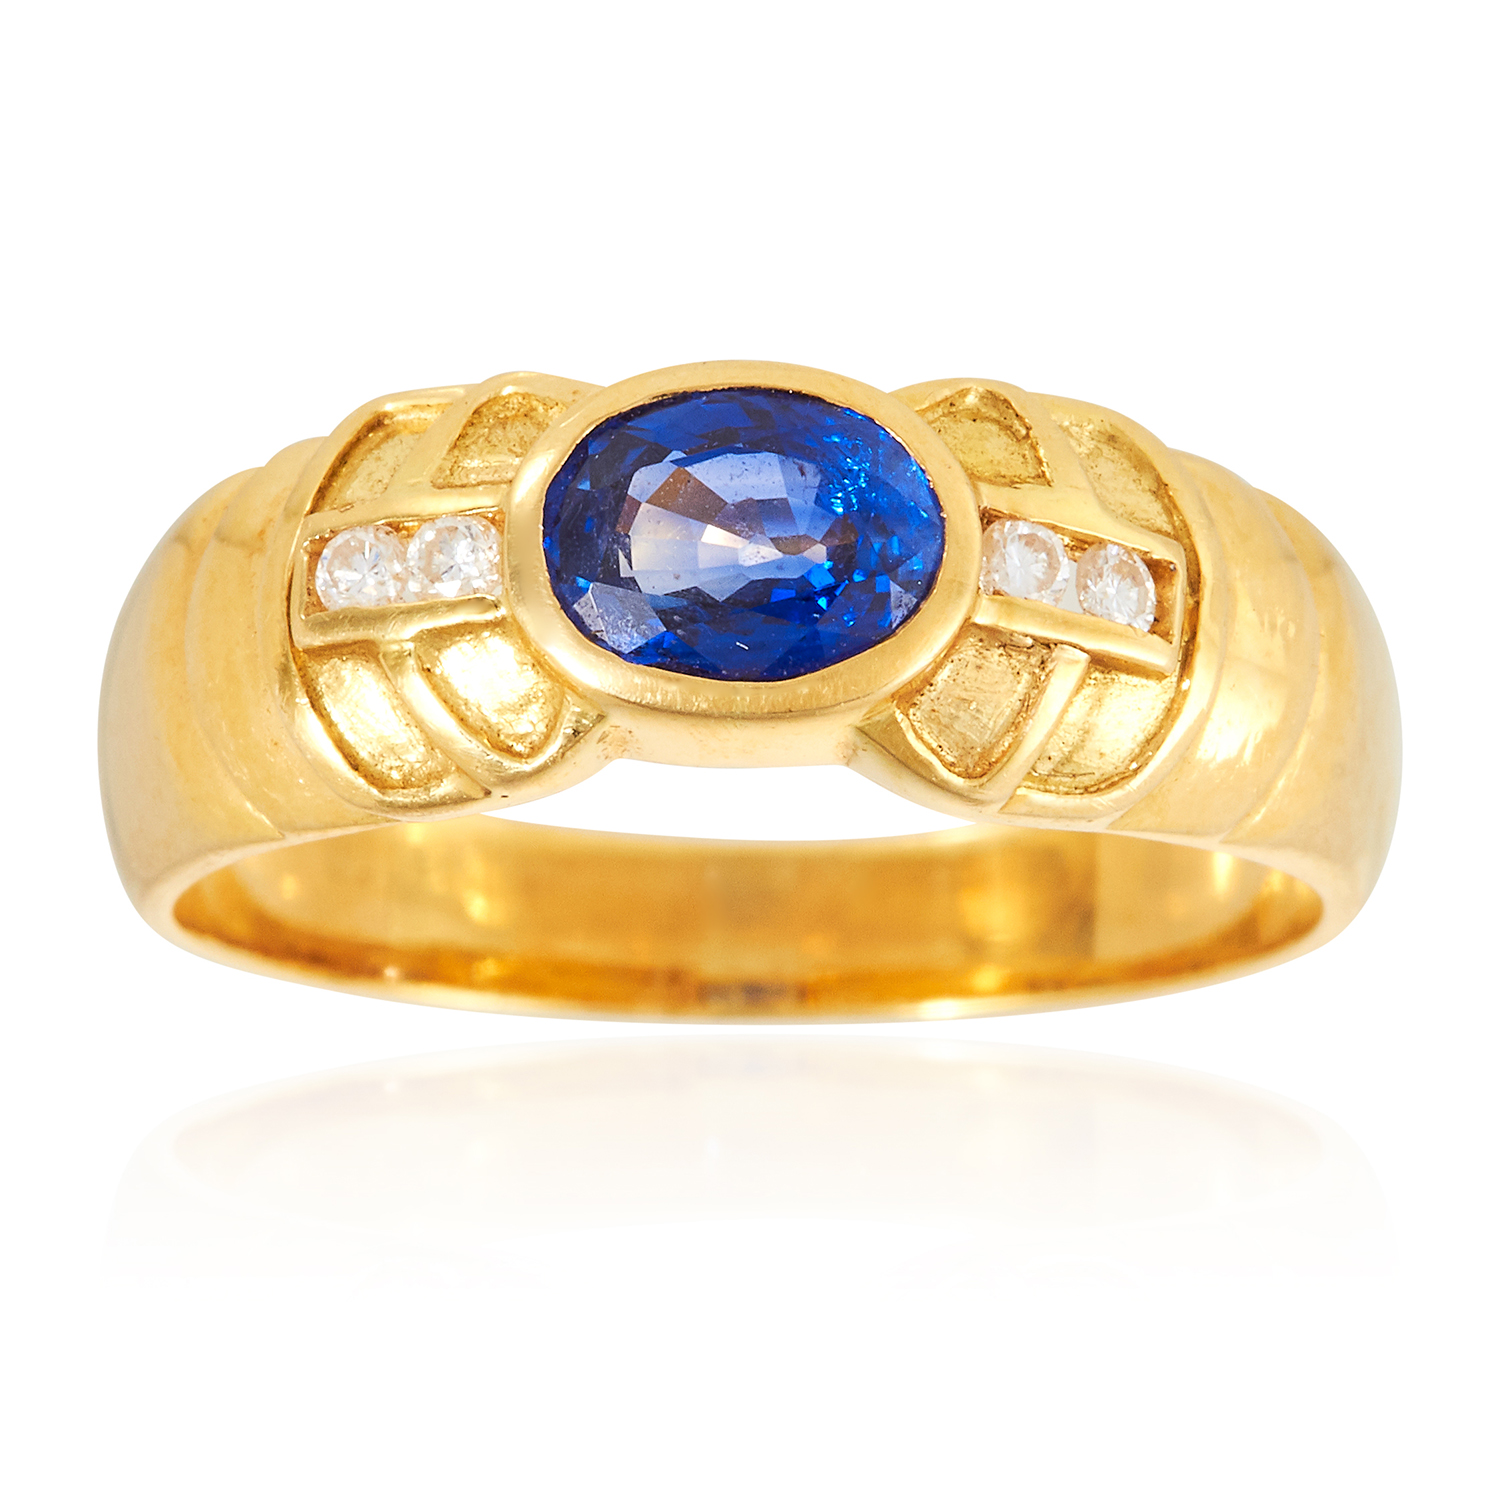 A SAPPHIRE AND DIAMOND DRESS RING in 18ct yellow gold, set with an oval cut Ceylon sapphire and four